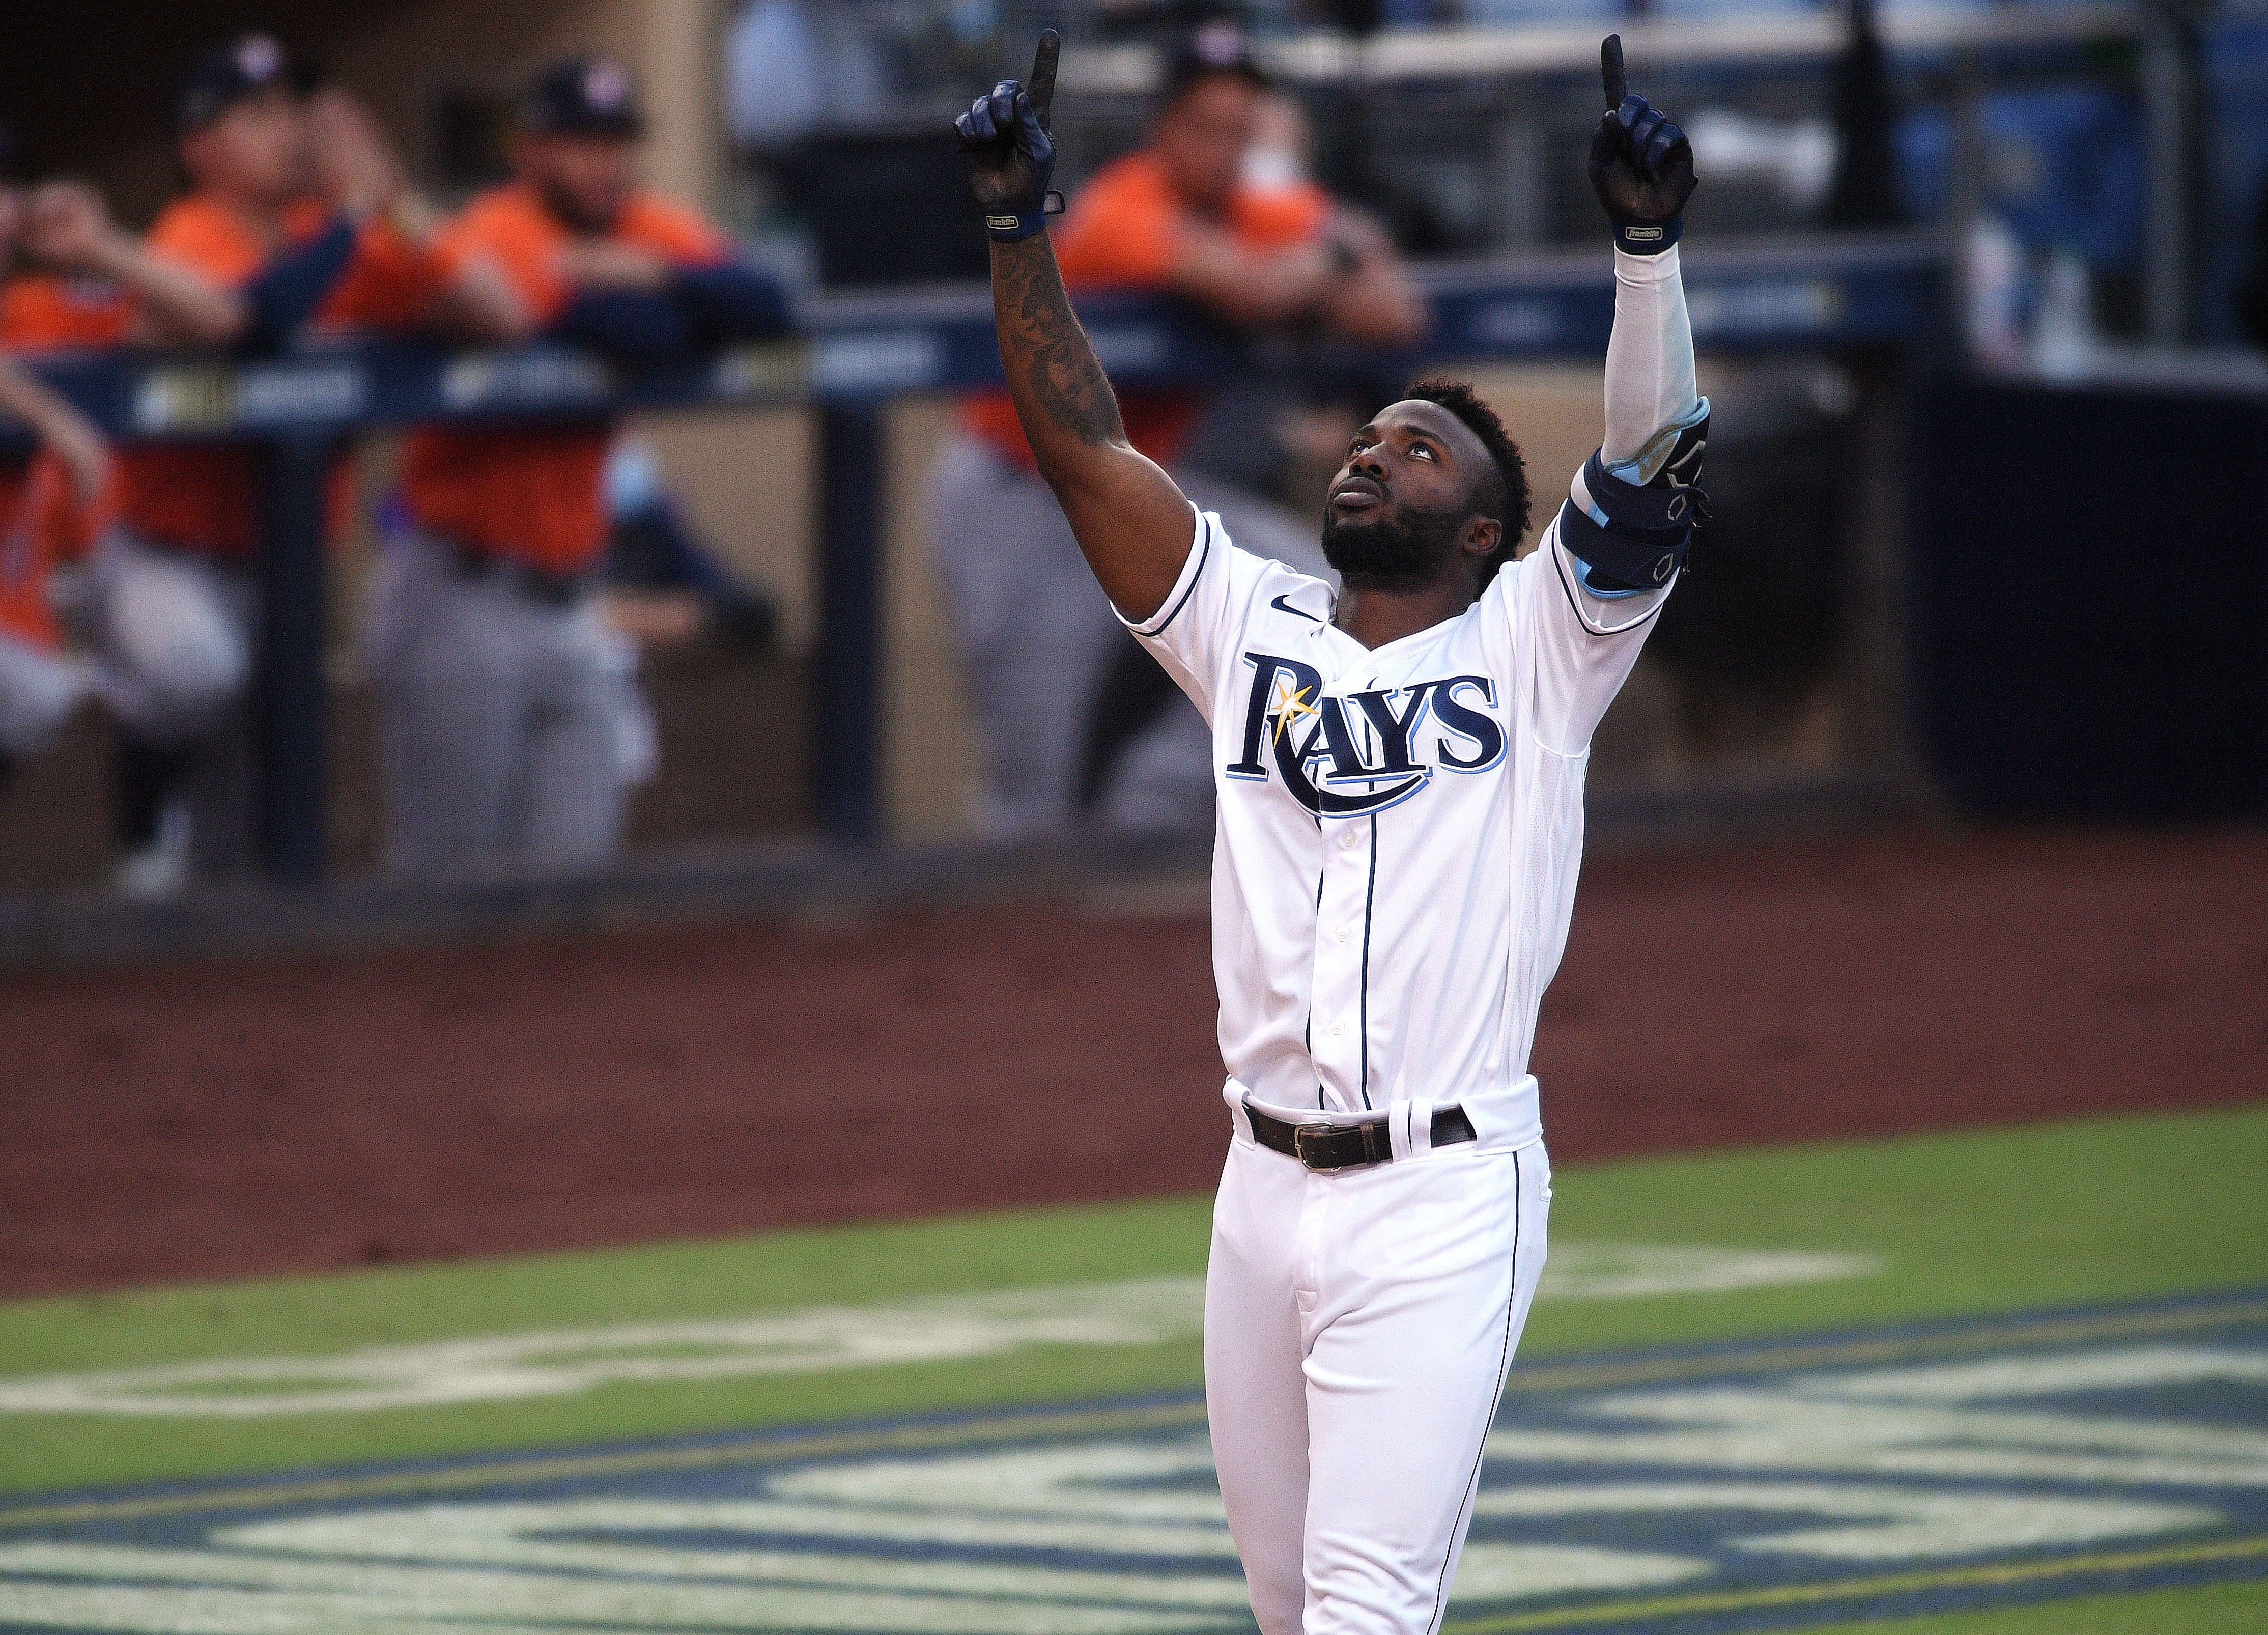 rays randy arozarena sets rookie record for most postseason homers randy arozarena sets rookie record